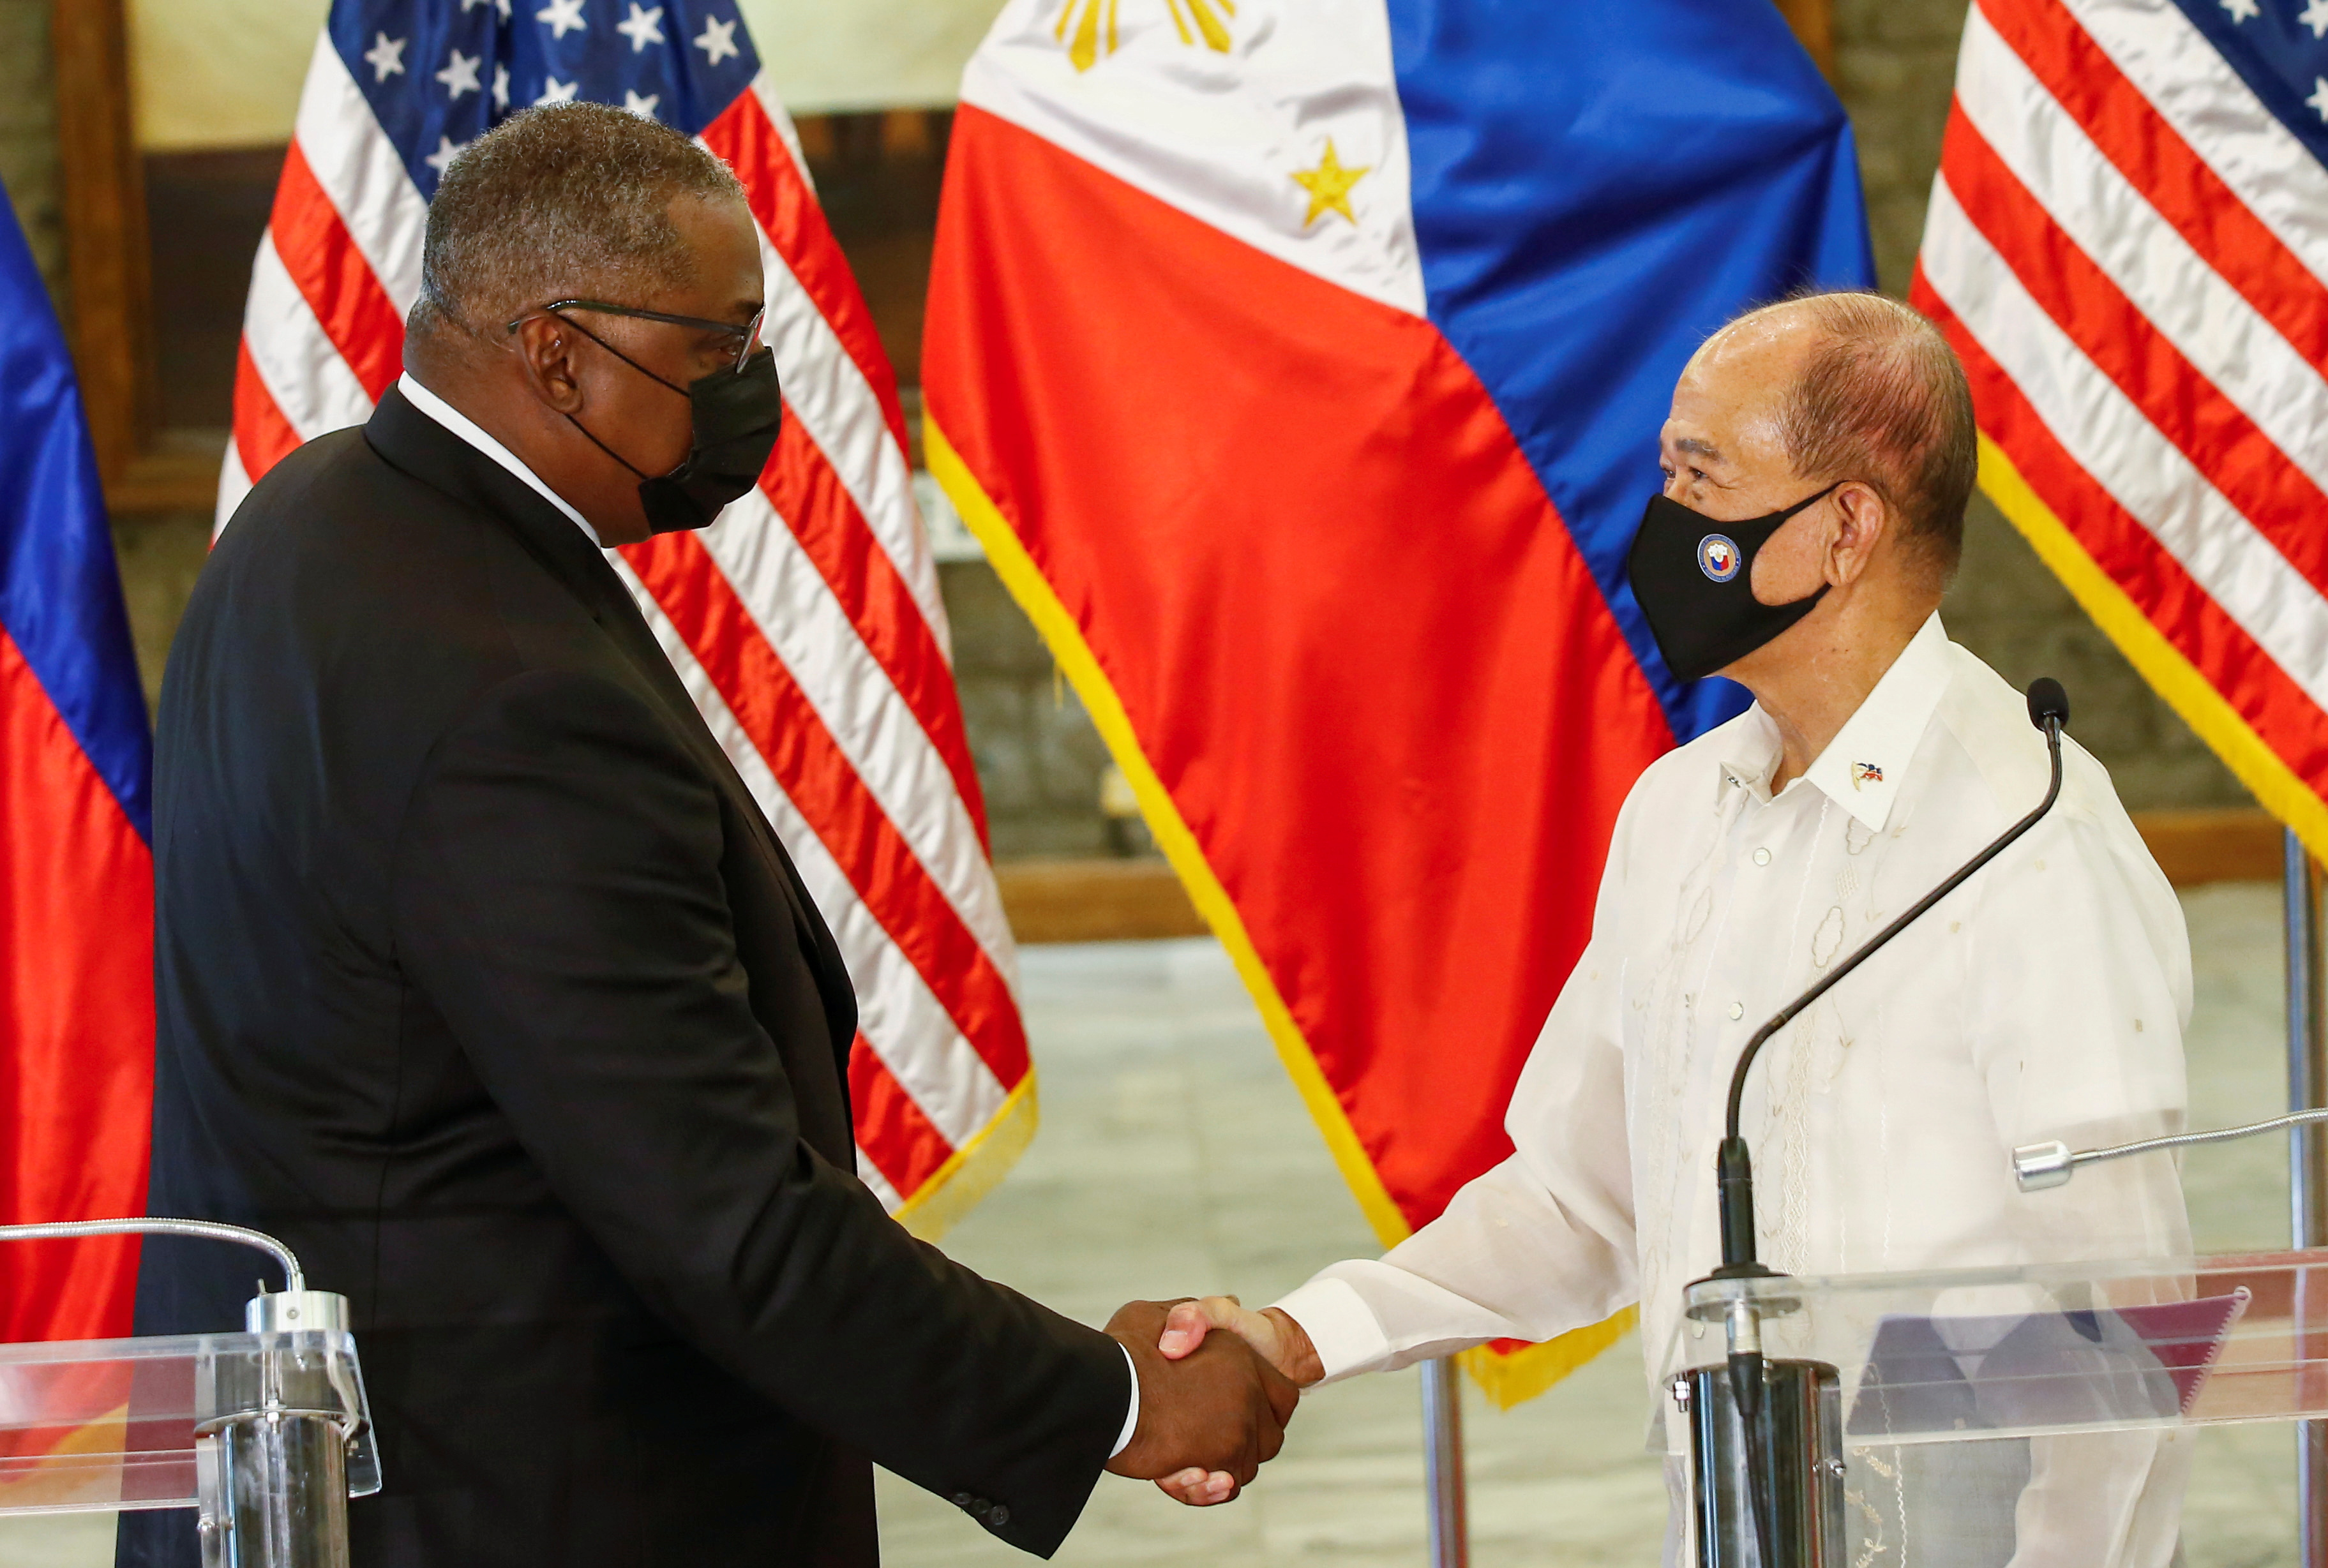 United States Defense Secretary Lloyd Austin (L) and Philippines' Defense Secretary Delfin Lorenzana (R) shake hands after a bilateral meeting at Camp Aguinaldo military camp in Quezon City, Metro Manila, Philippines, July 30, 2021. Rolex Dela Pena/Pool via Reuters